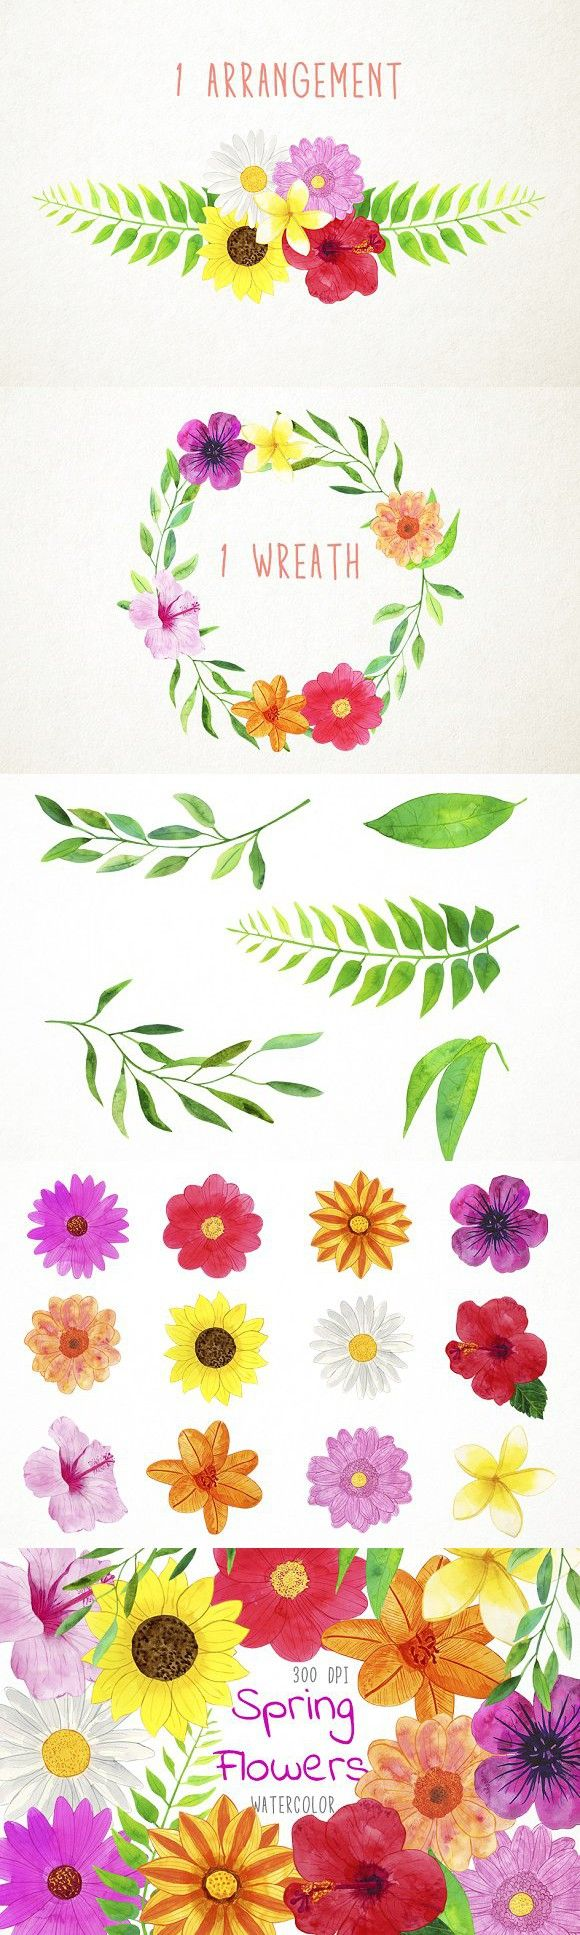 Watercolor Spring Flowers Clipart Pinterest Watercolor